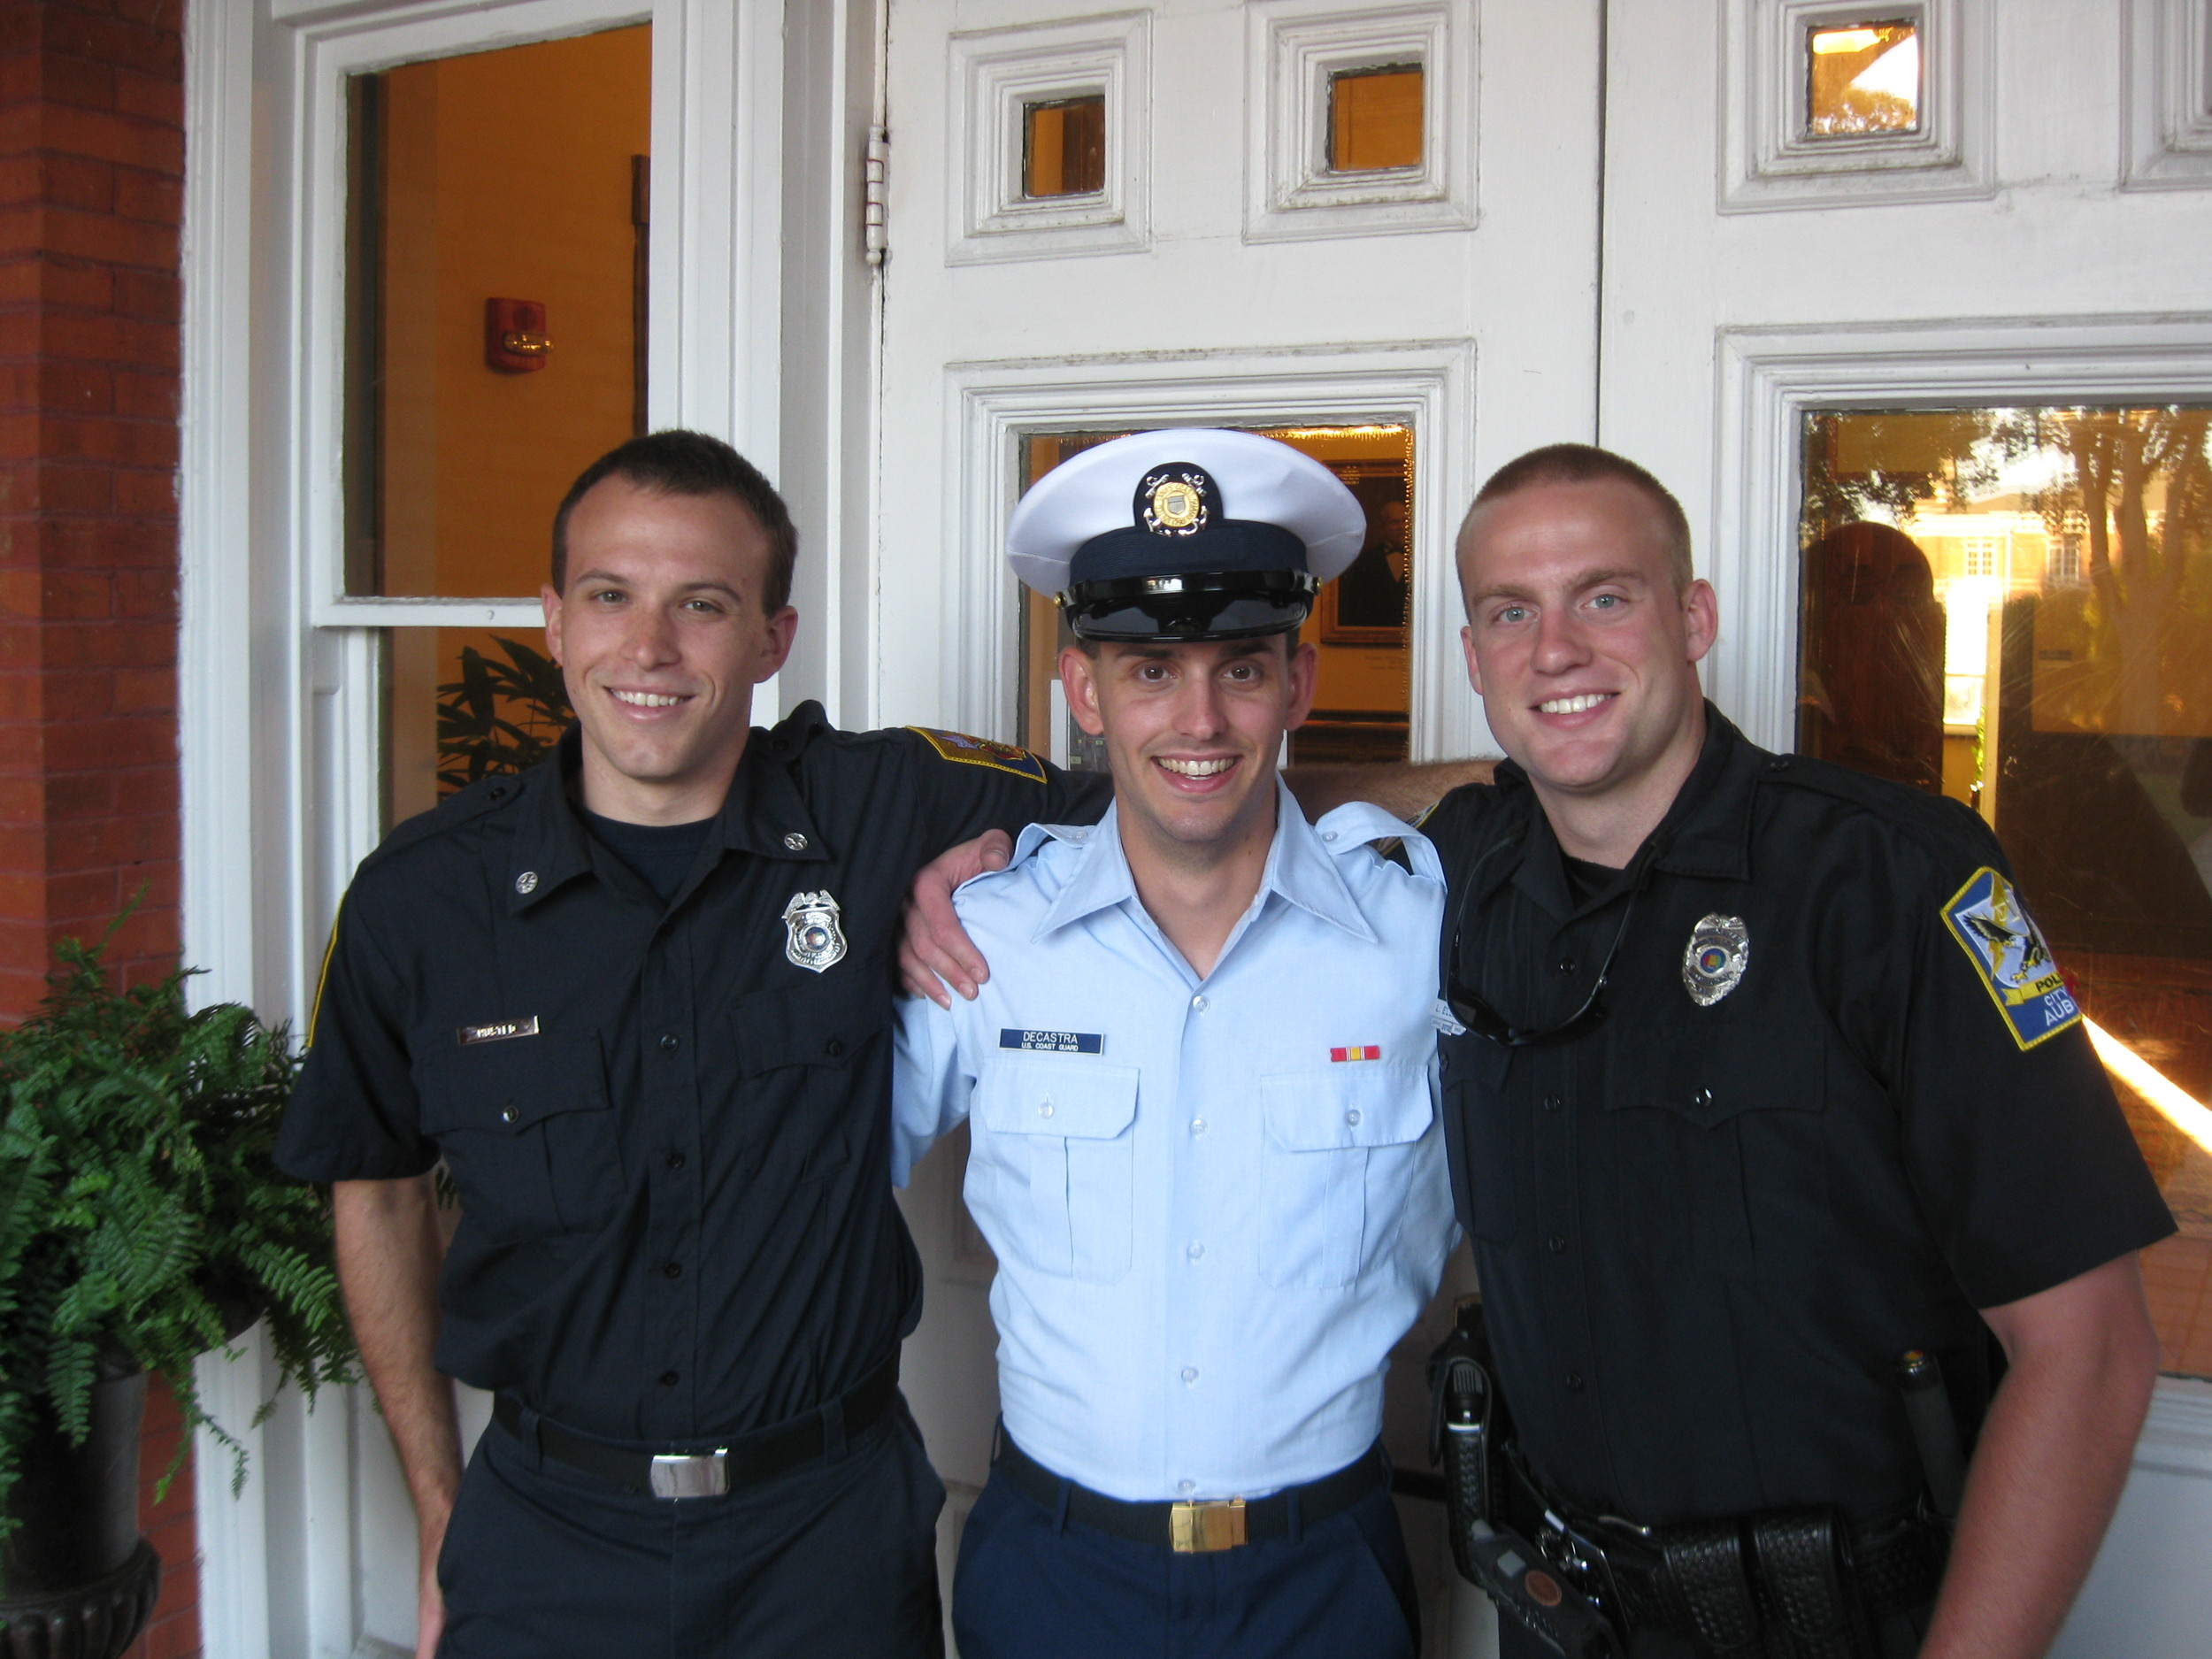 DeCastra, after graduating from TRACEN Cape May, gathers with Unit Auburn shipmates Andrew Husted (left) and Landon Elliot (right.) Mr. Husted currently works for the Auburn Fire Department and Mr. Elliot for the Auburn Police Department. Courtesy photo.